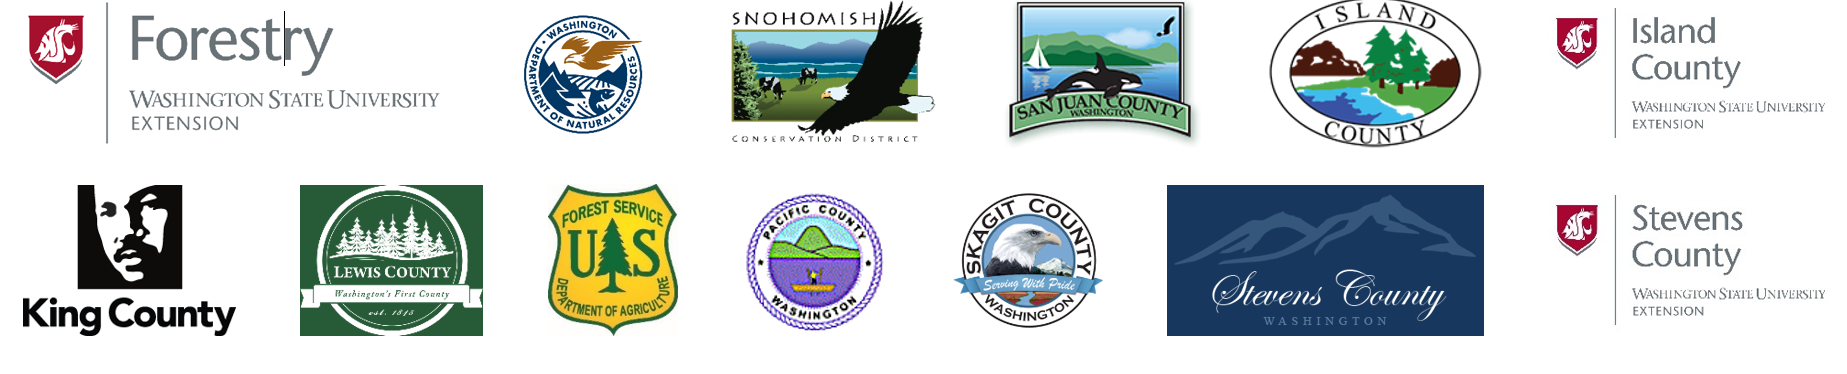 Logos of: Washington State University, Washington State Department of Natural Resources, Island County and WSU Extension Island County, King Conservation District, King County, Lewis County, Pacific County, San Juan County, Skagit County, Stevens County, Snohomish Conservation District, USDA Forest Service, Washington State Department of Natural Resources, and the Renewable Resources Extension Act.